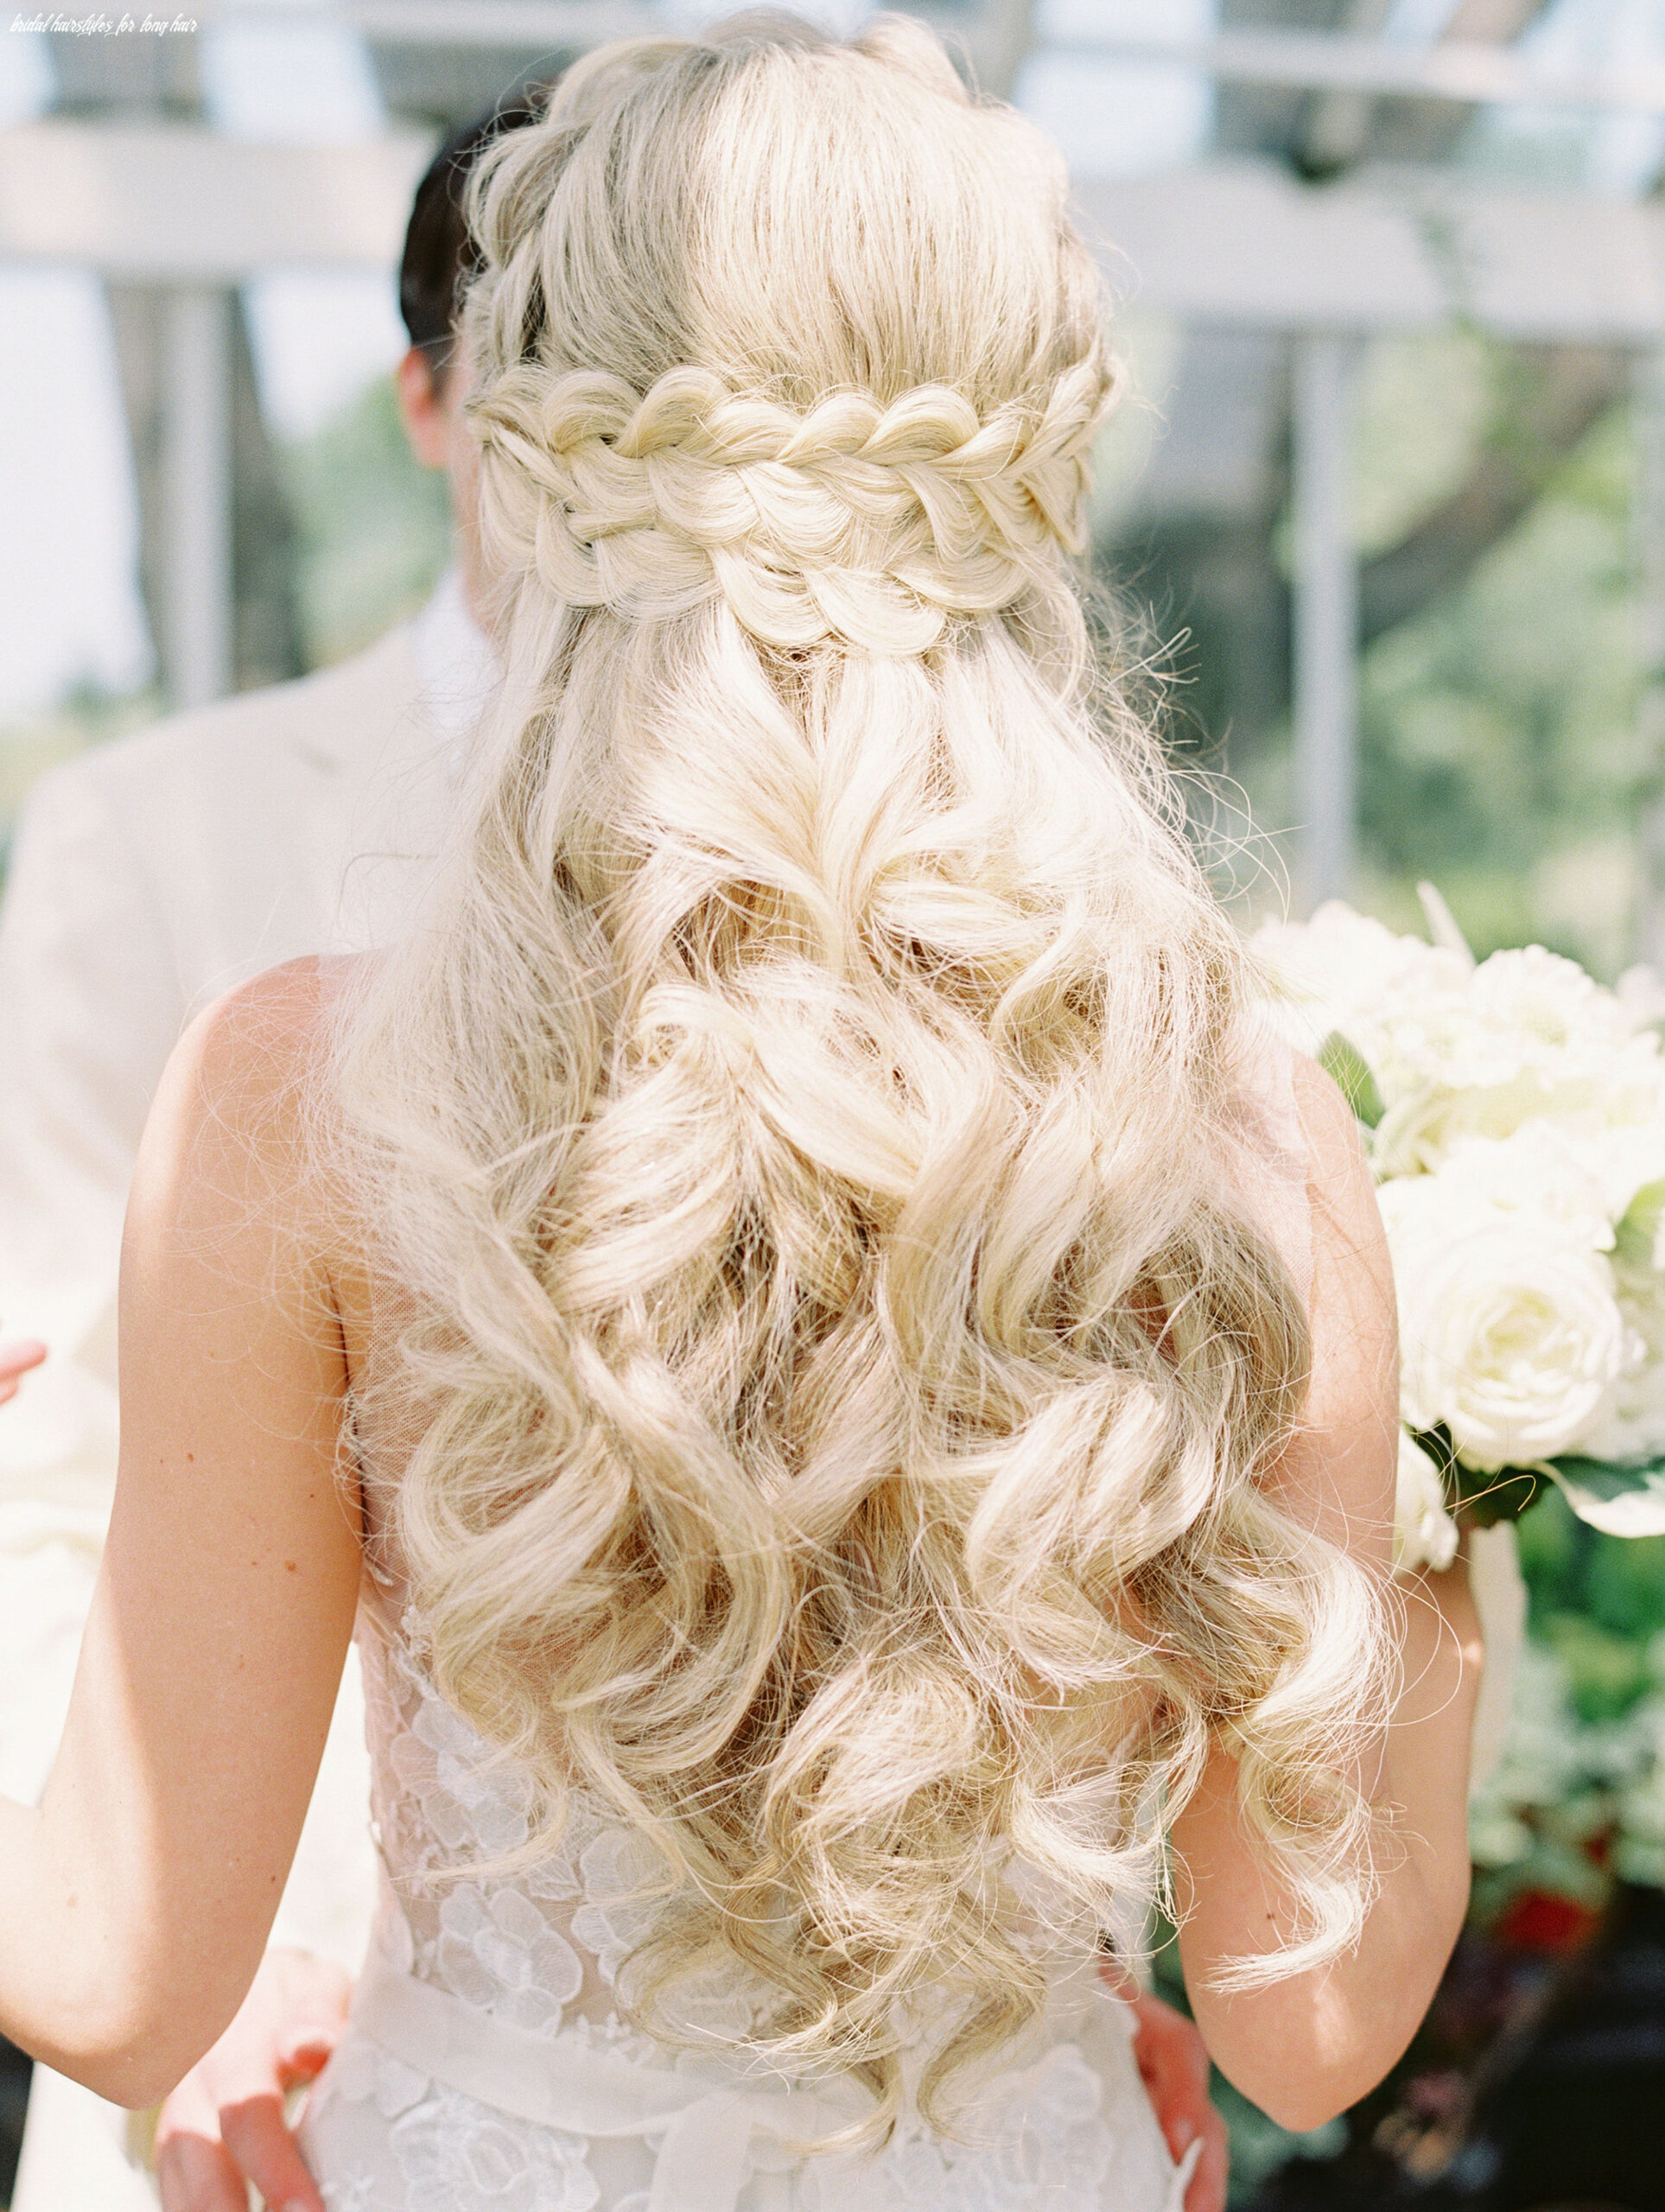 11 pretty wedding hairstyles for brides with long hair   martha